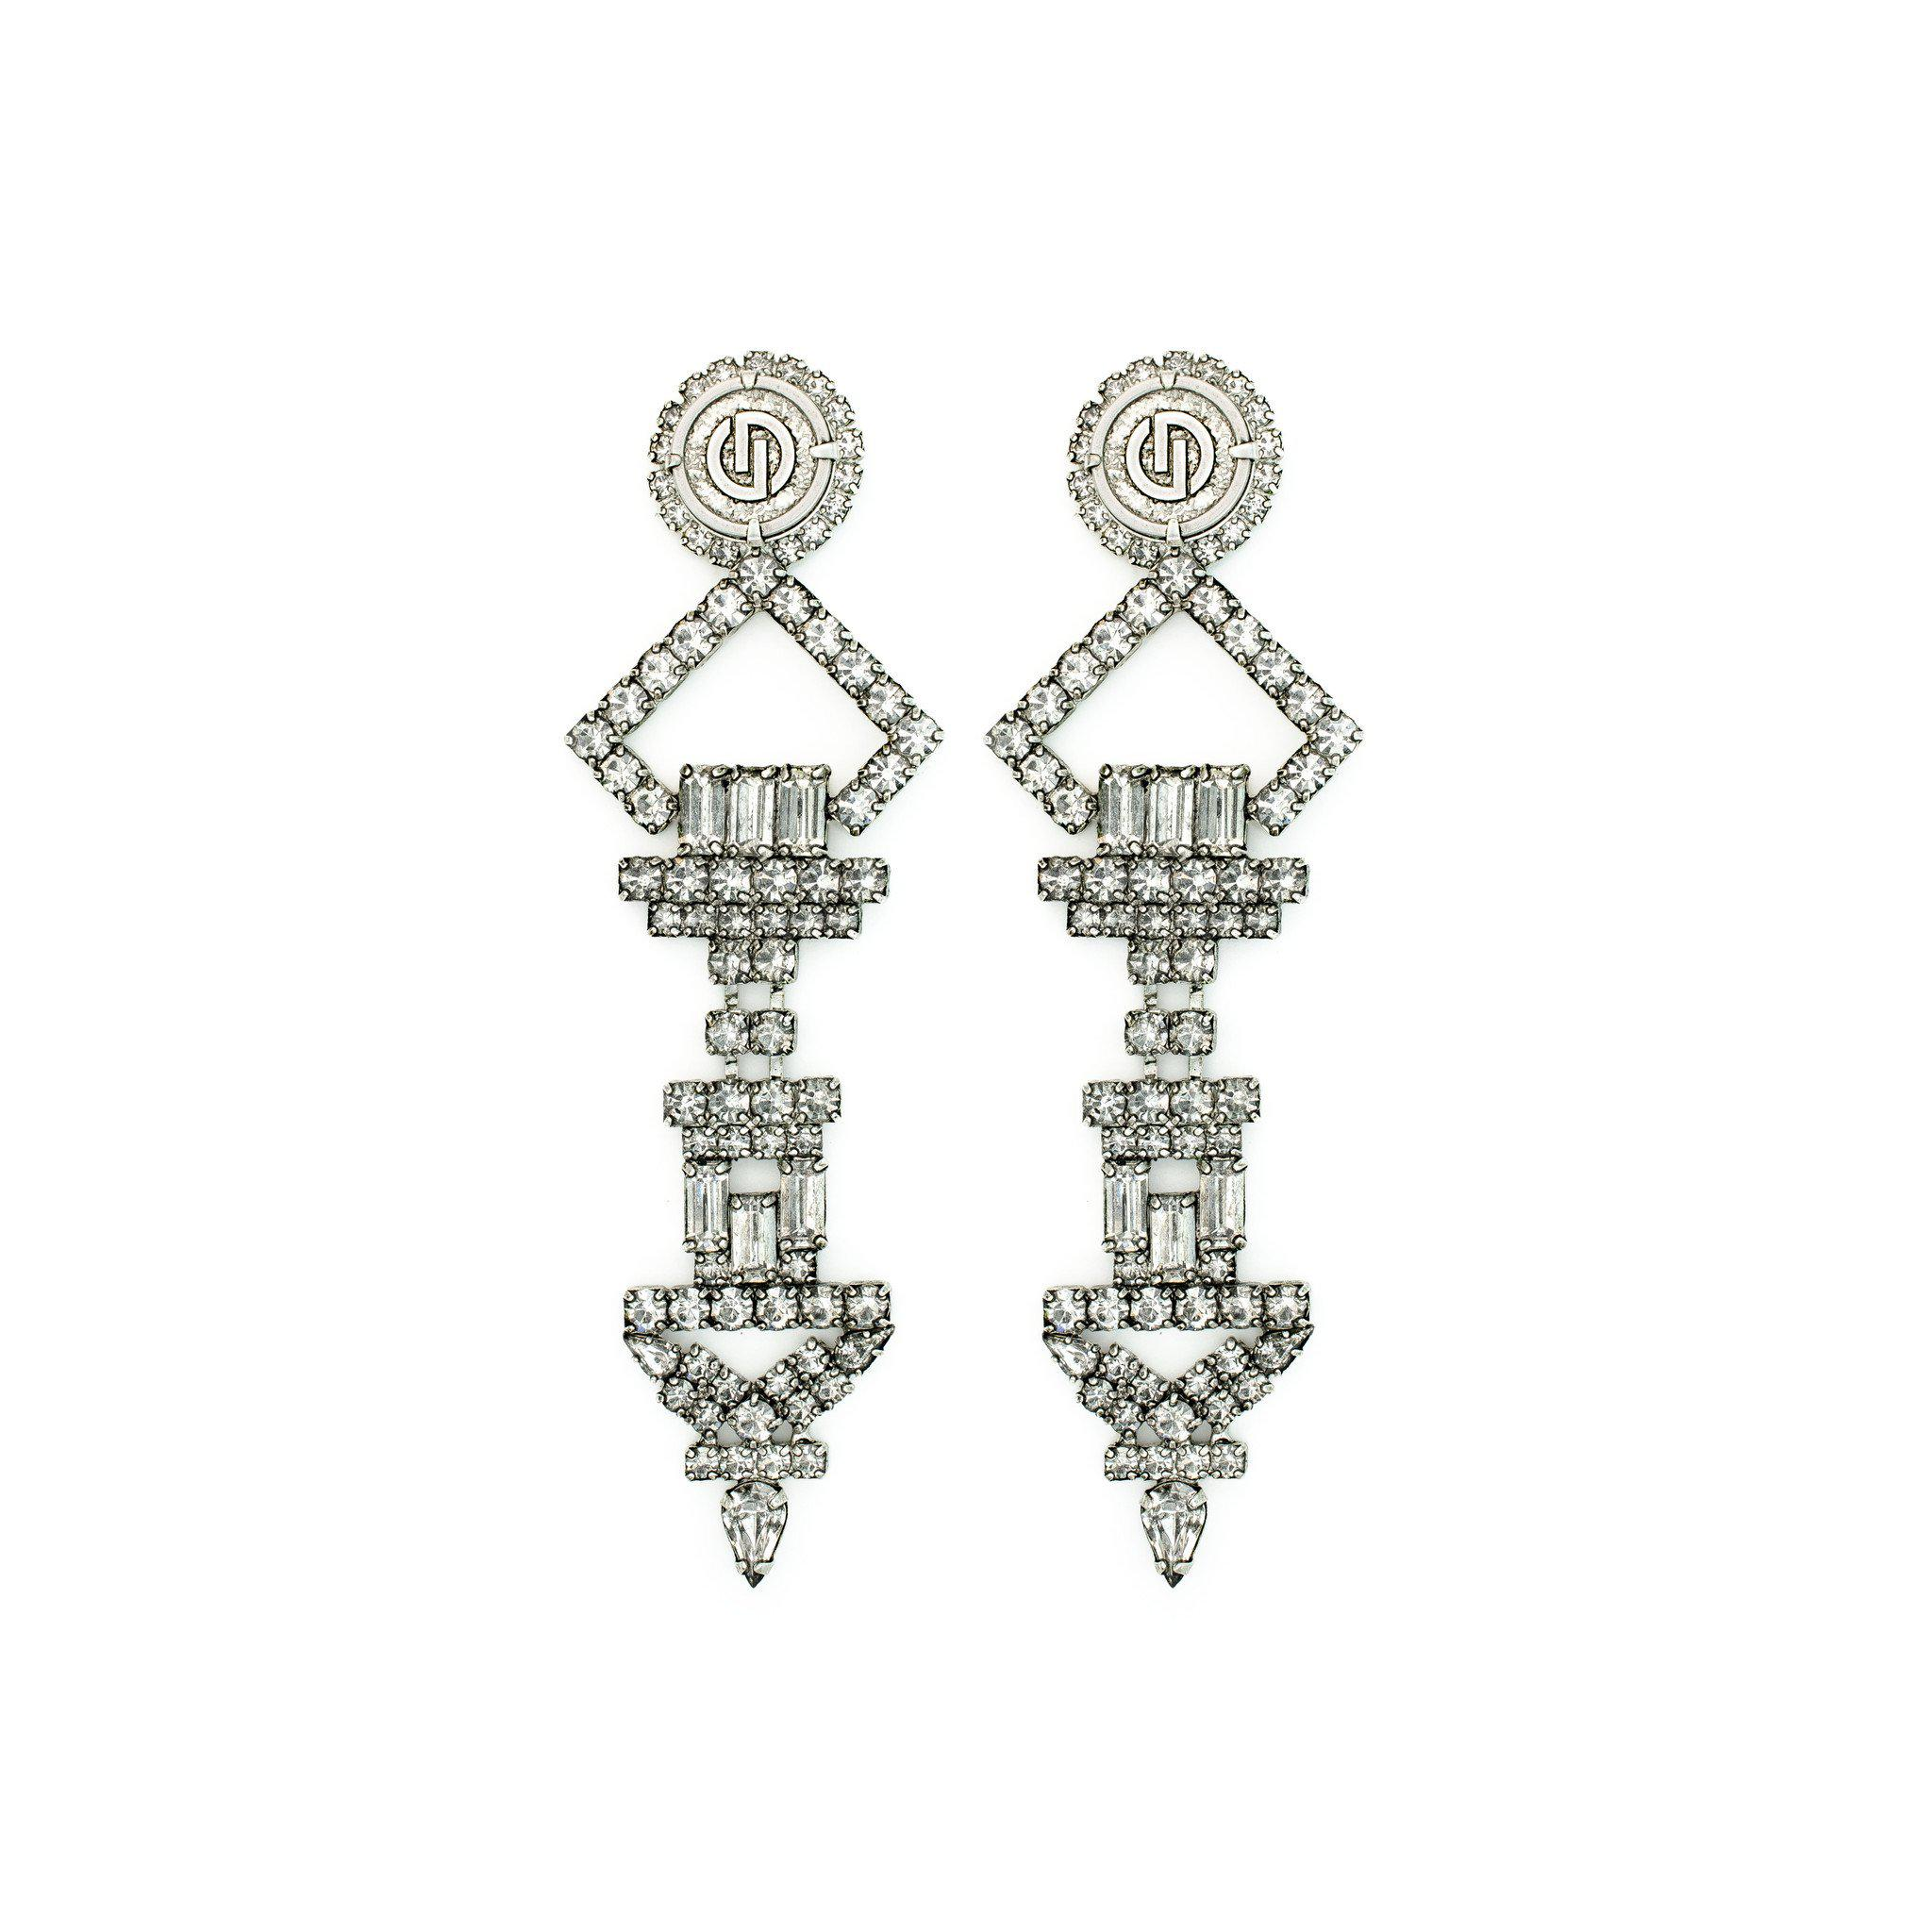 Dylanlex Luca Statement Earrings TyNqPkCv